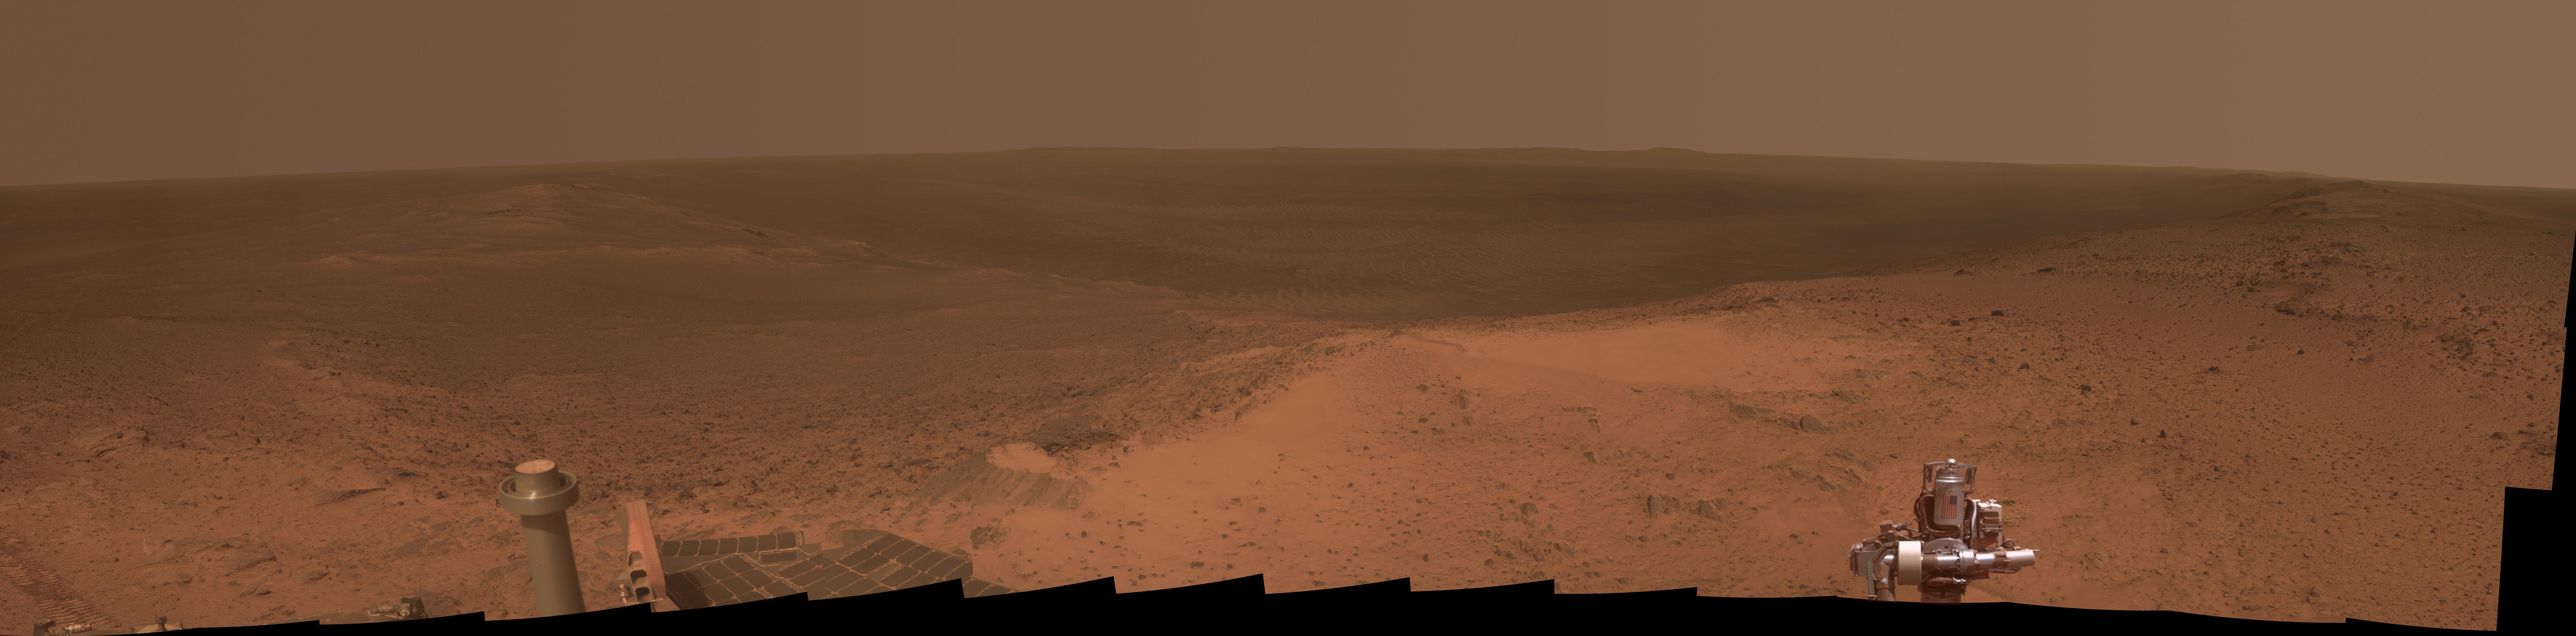 Curiosity Rover Marks 11th Anniversary with Hilltop Panorama